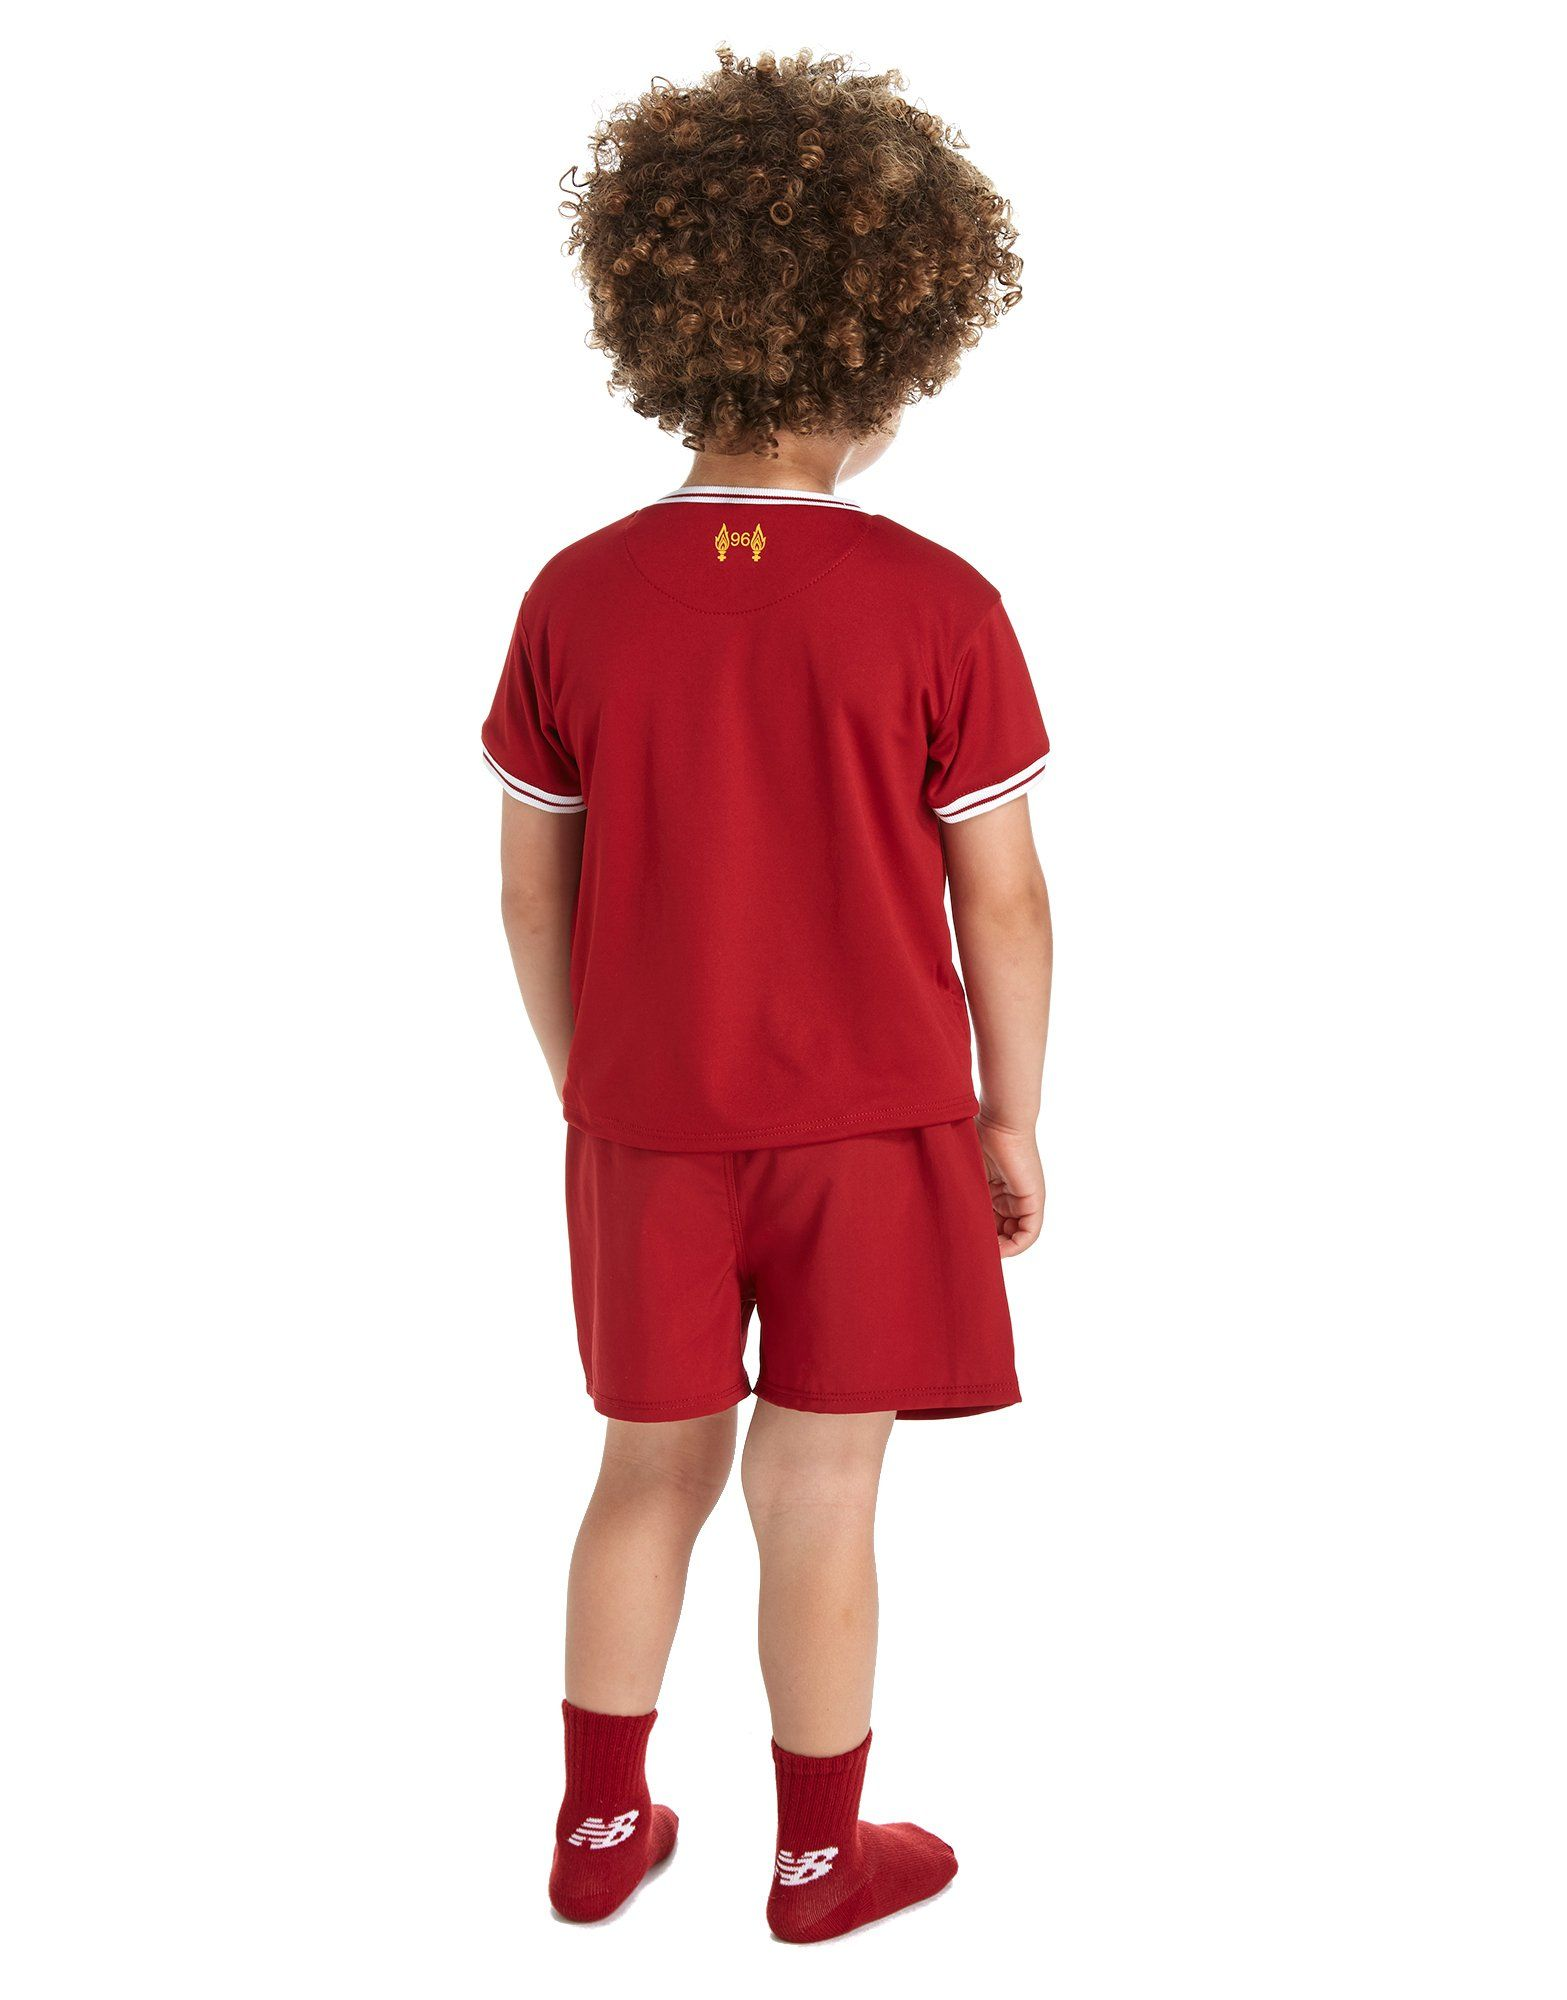 New Balance Liverpool FC 2017/18 Home Kit Infant